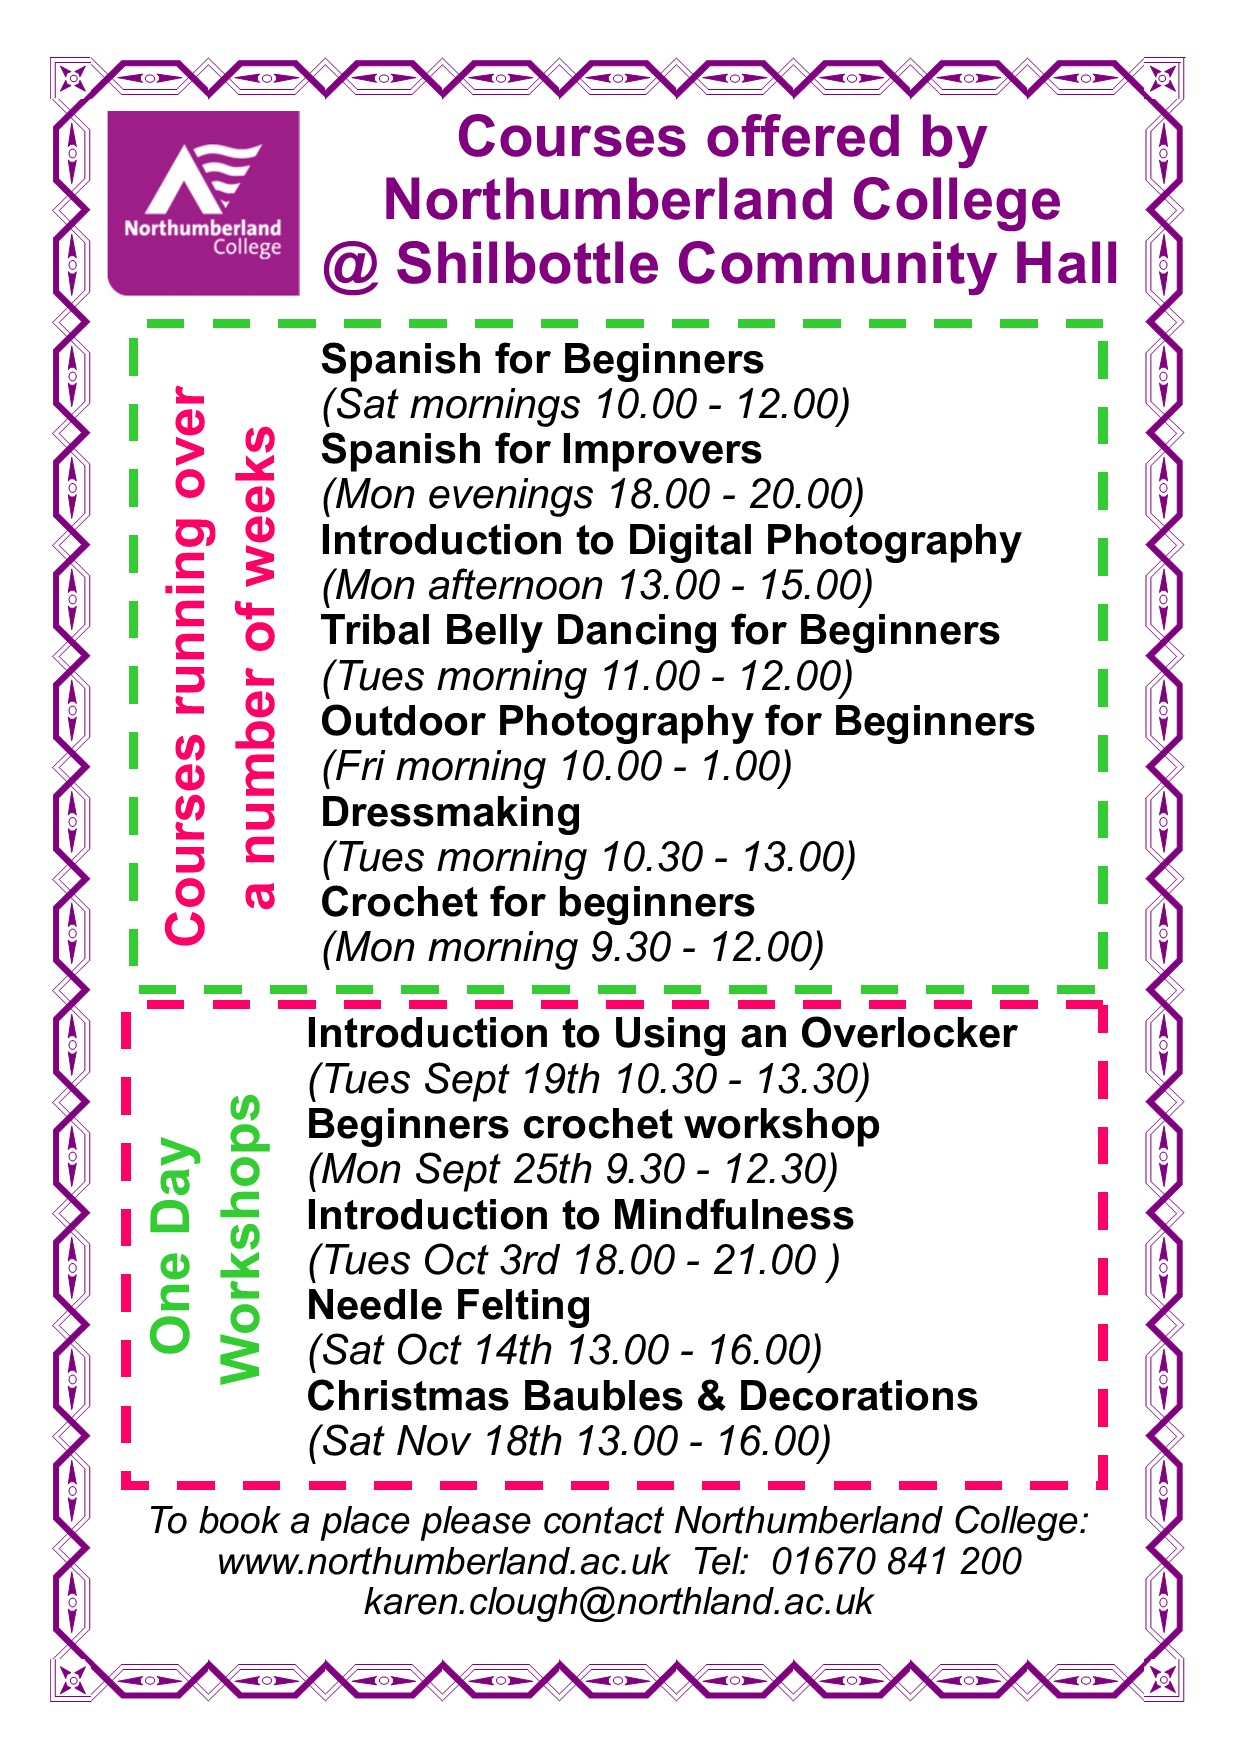 Cake Making Classes Northumberland : Upcoming Events Shilbottle Community Hall